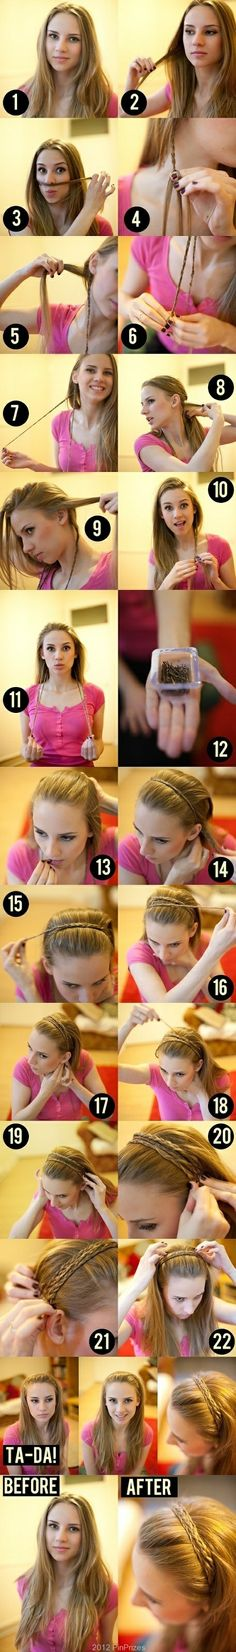 Easy Braided Summer Hairstyles hairstyles tutorial use your hair for braided headband!hairstyles tutorial use your hair for braided headband! Party Hairstyles, Headband Hairstyles, Trendy Hairstyles, Braid Headband, Headband Tutorial, Summer Hairstyles, Hairdos, Amazing Hairstyles, Updos